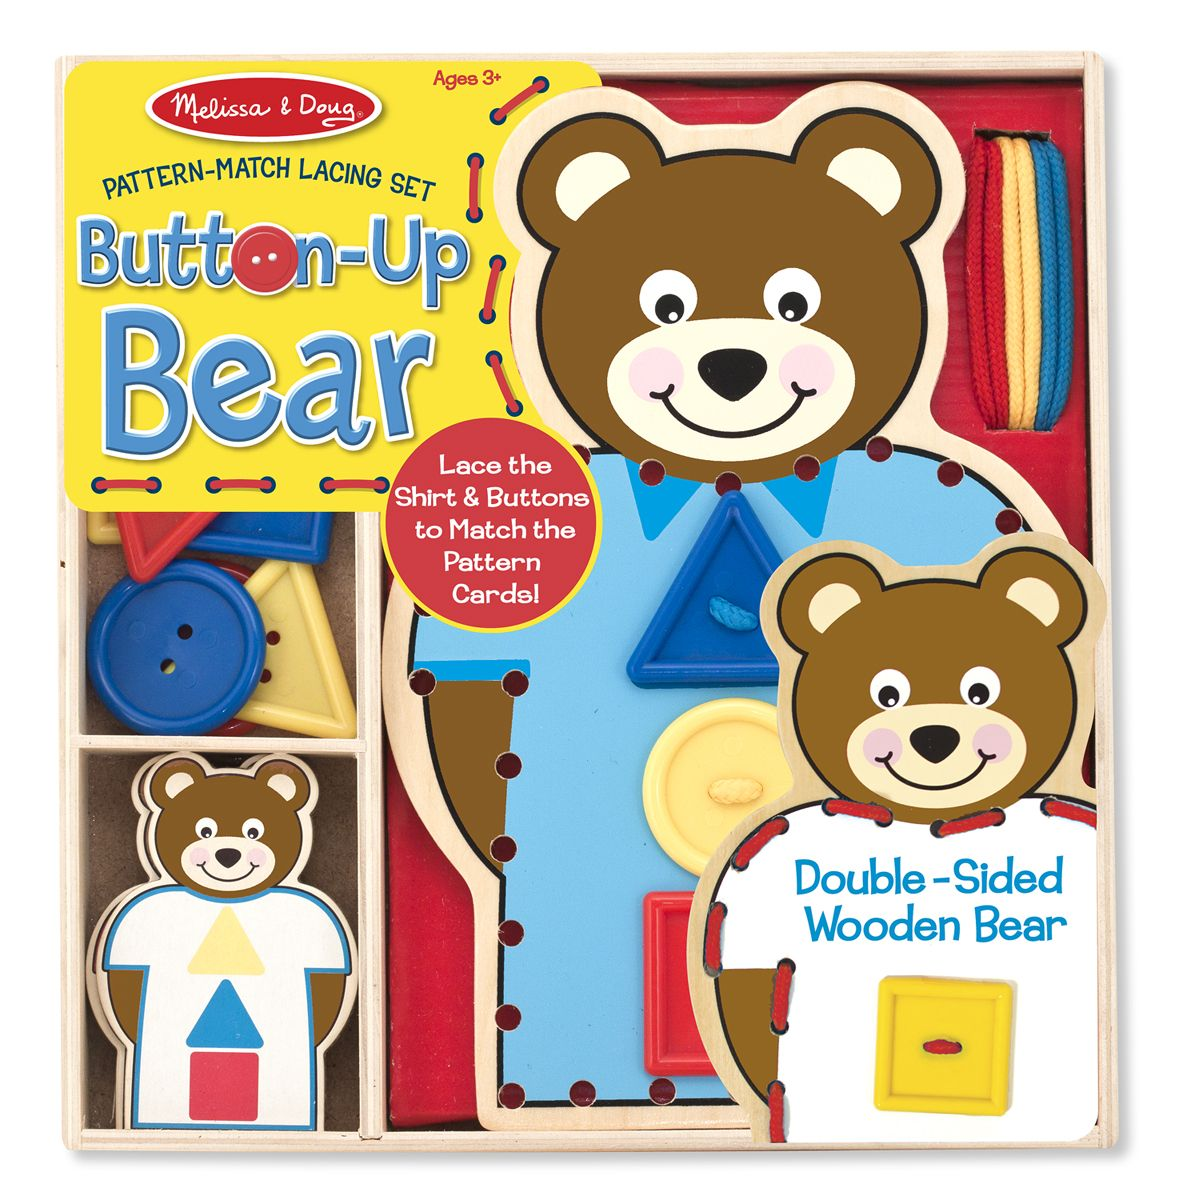 Pattern-Match Lacing Set - Button-Up Bear | Best Toys for ...